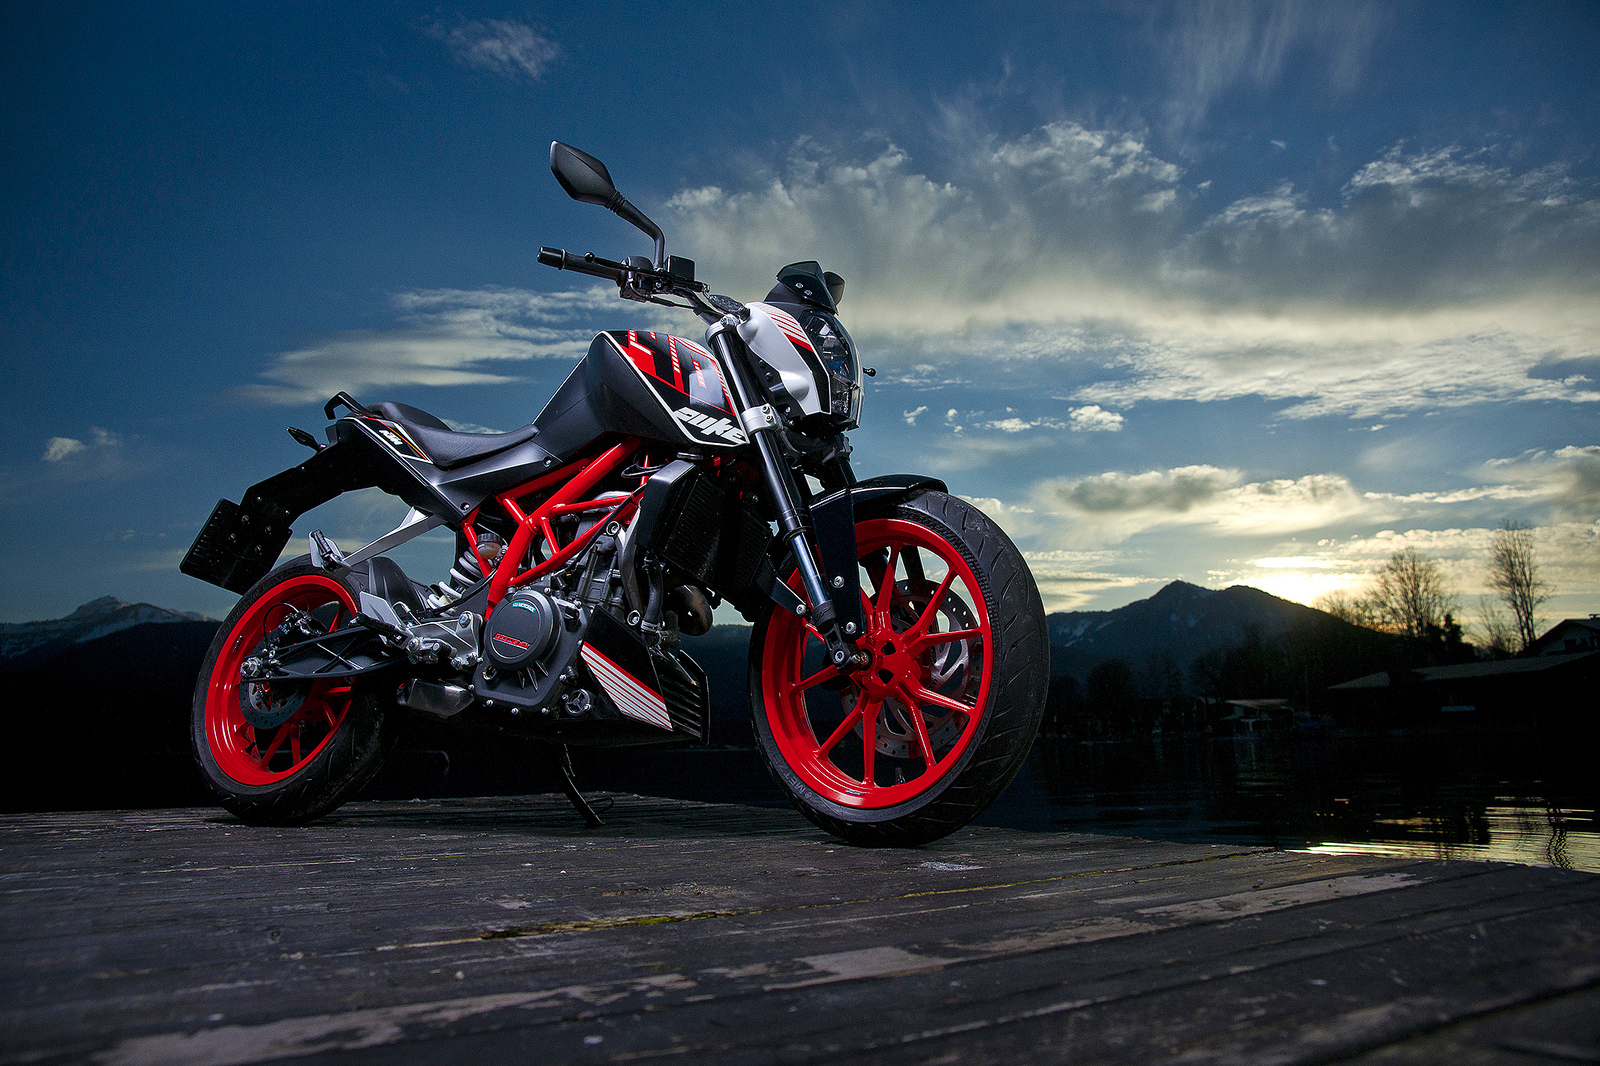 Editing Zone Bike Background: All Ktm Duke Hd Backgrounds Download Now ? Best Editing